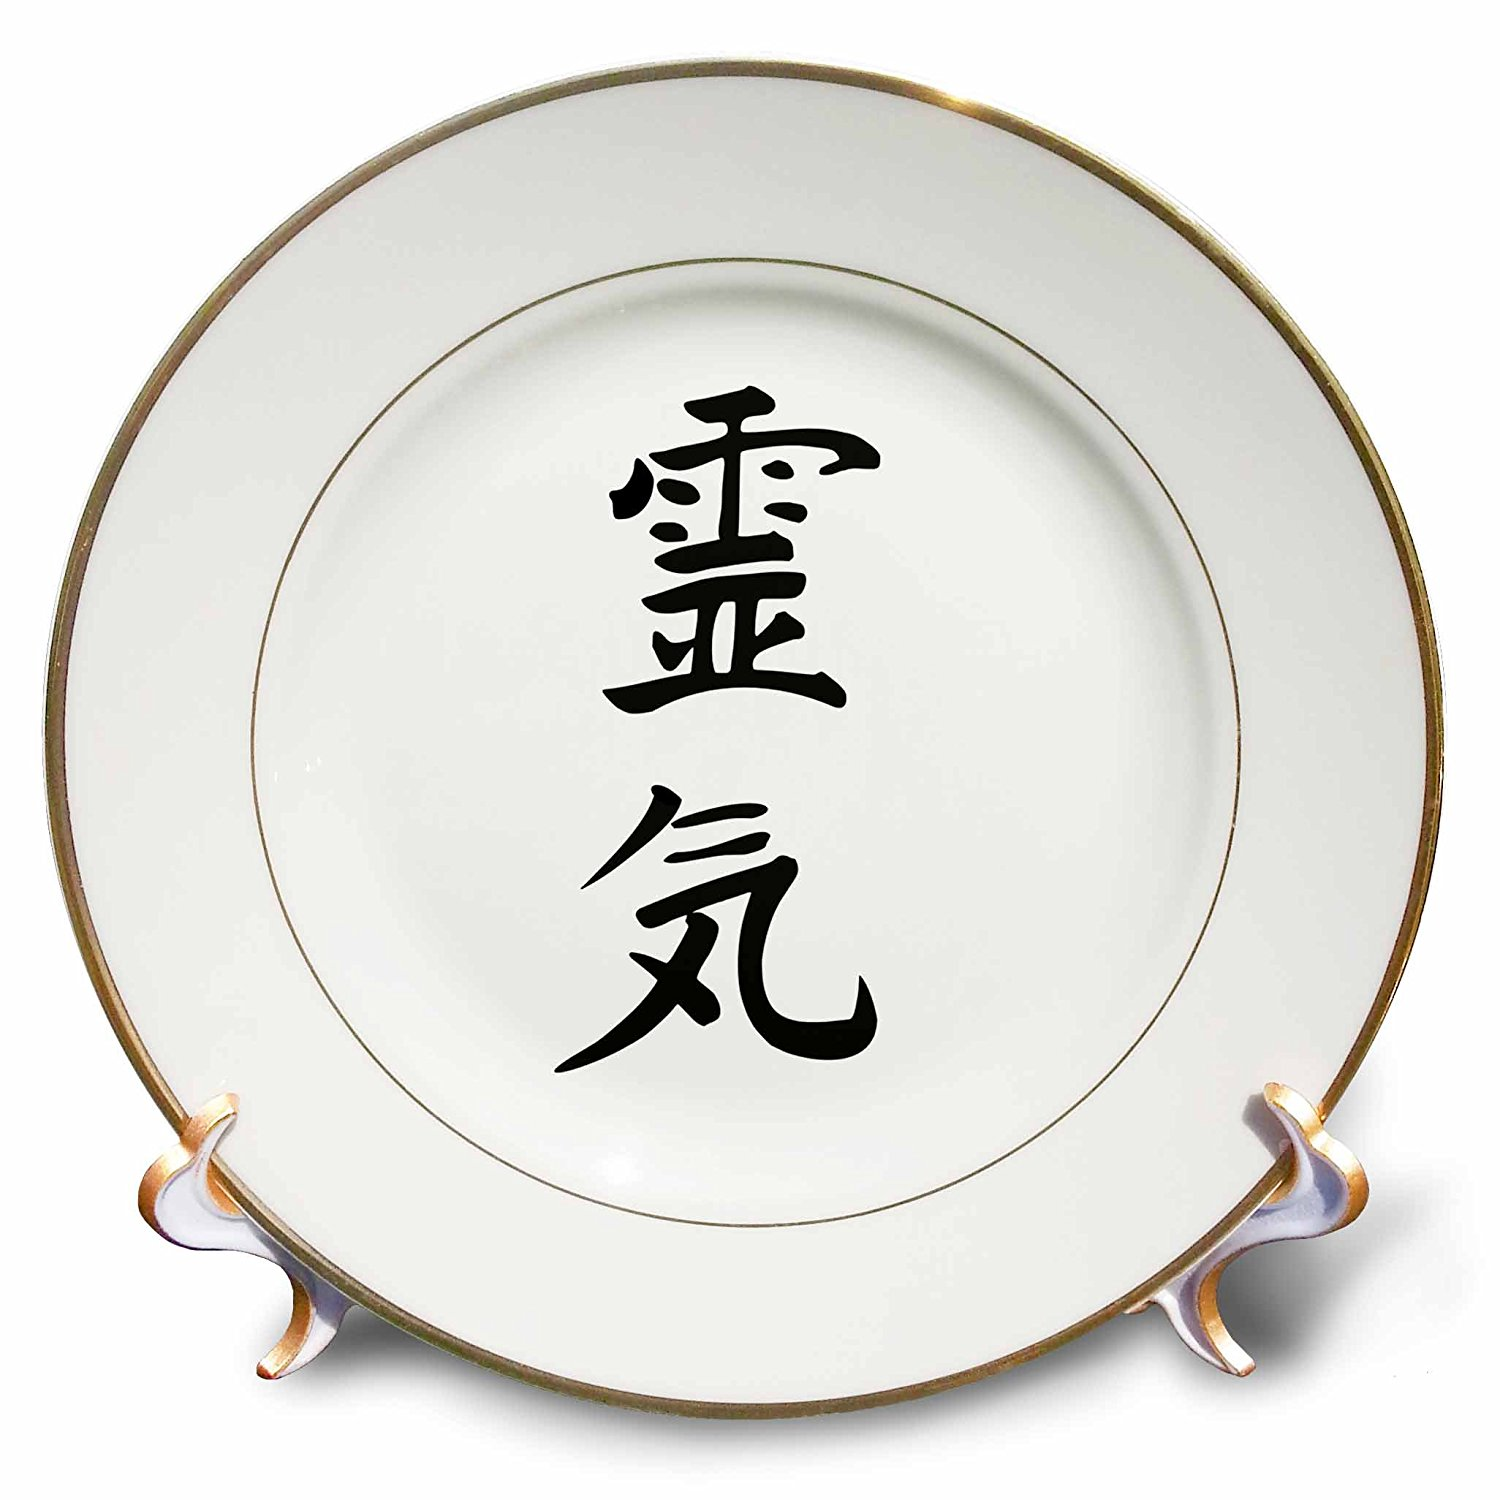 Cheap Japanese Symbol Find Japanese Symbol Deals On Line At Alibaba